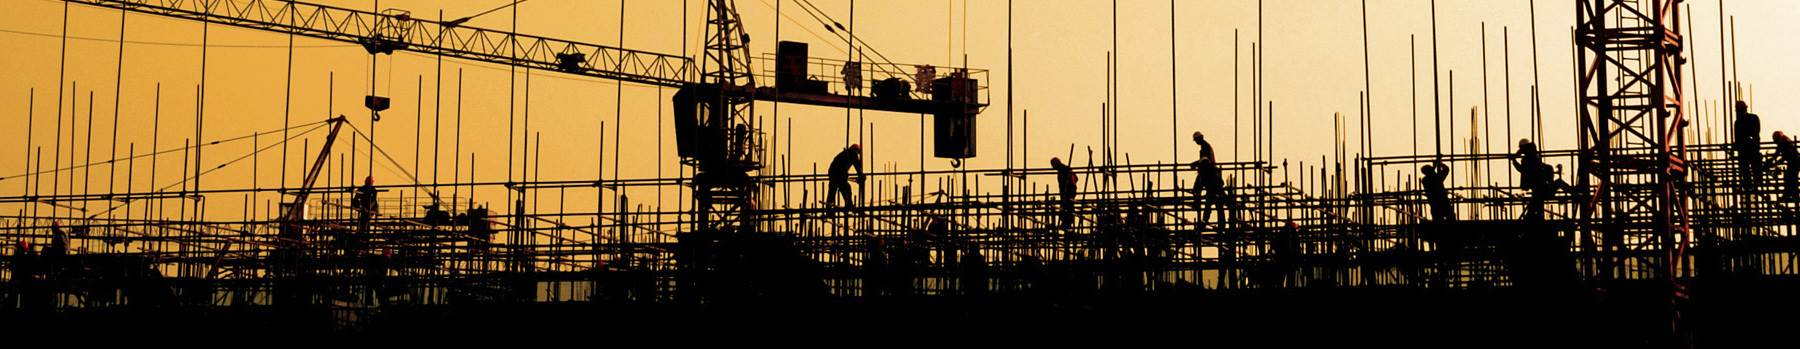 Construction Management and WorkFace Planning Software